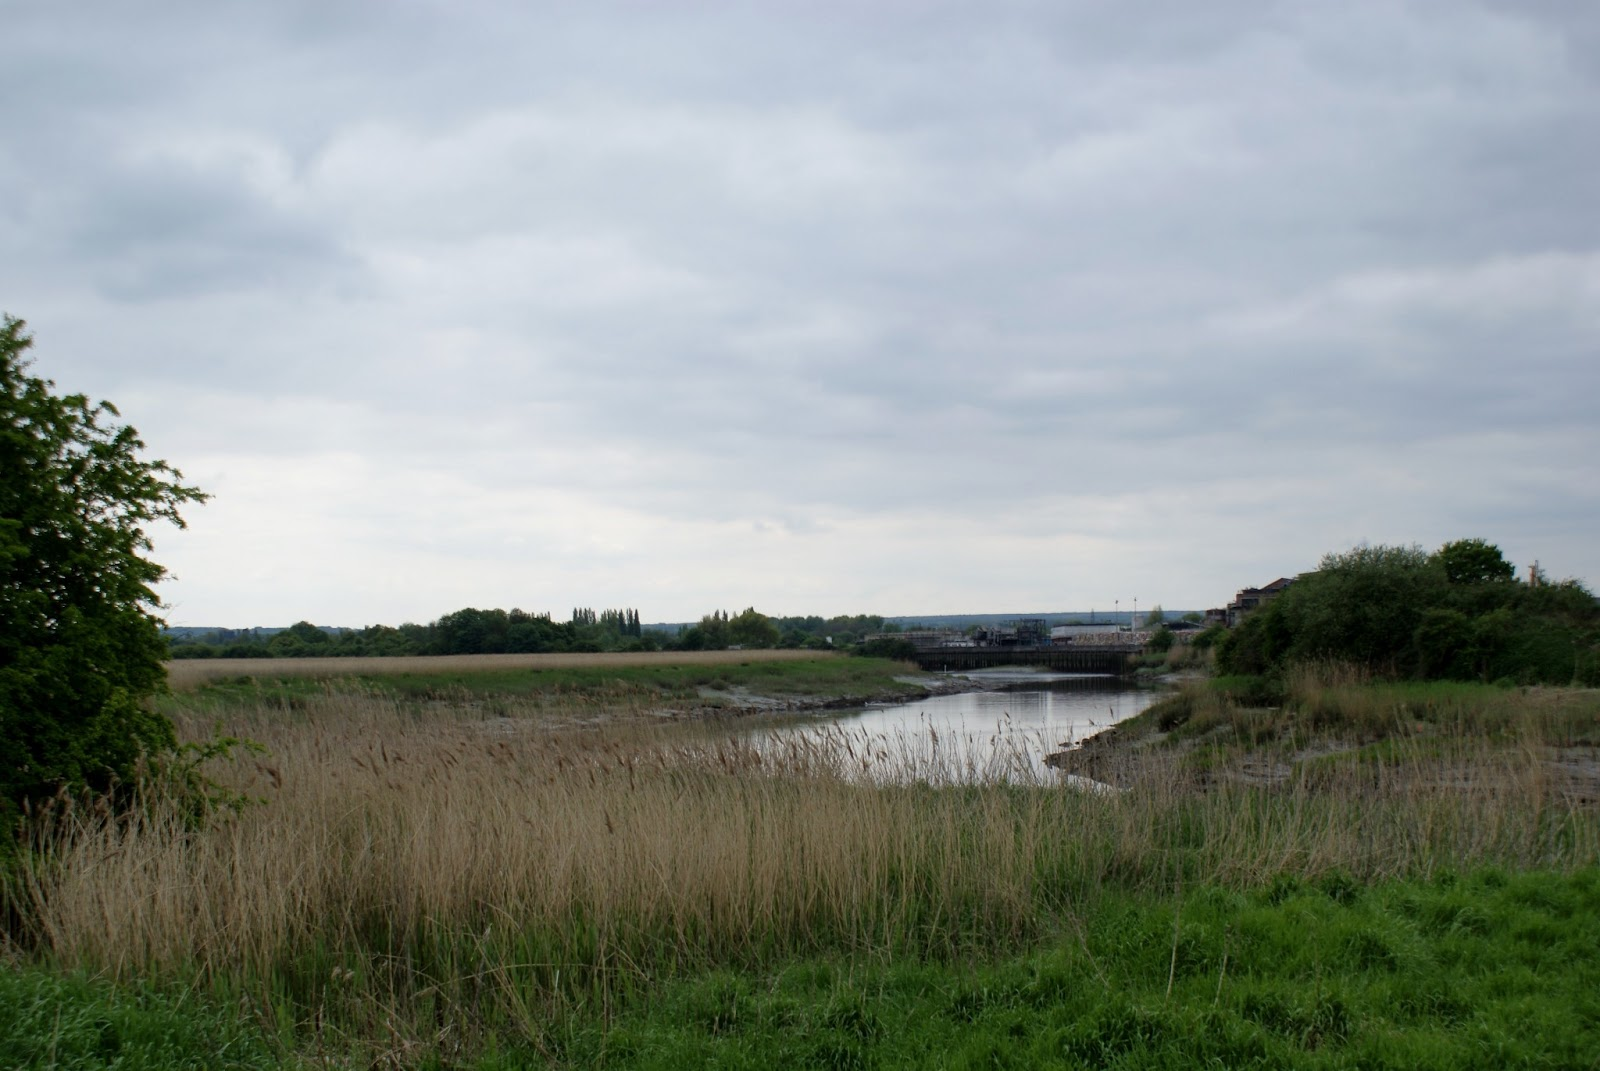 ripplestone review: The Medway Gap ~ Walking in the hidden ...